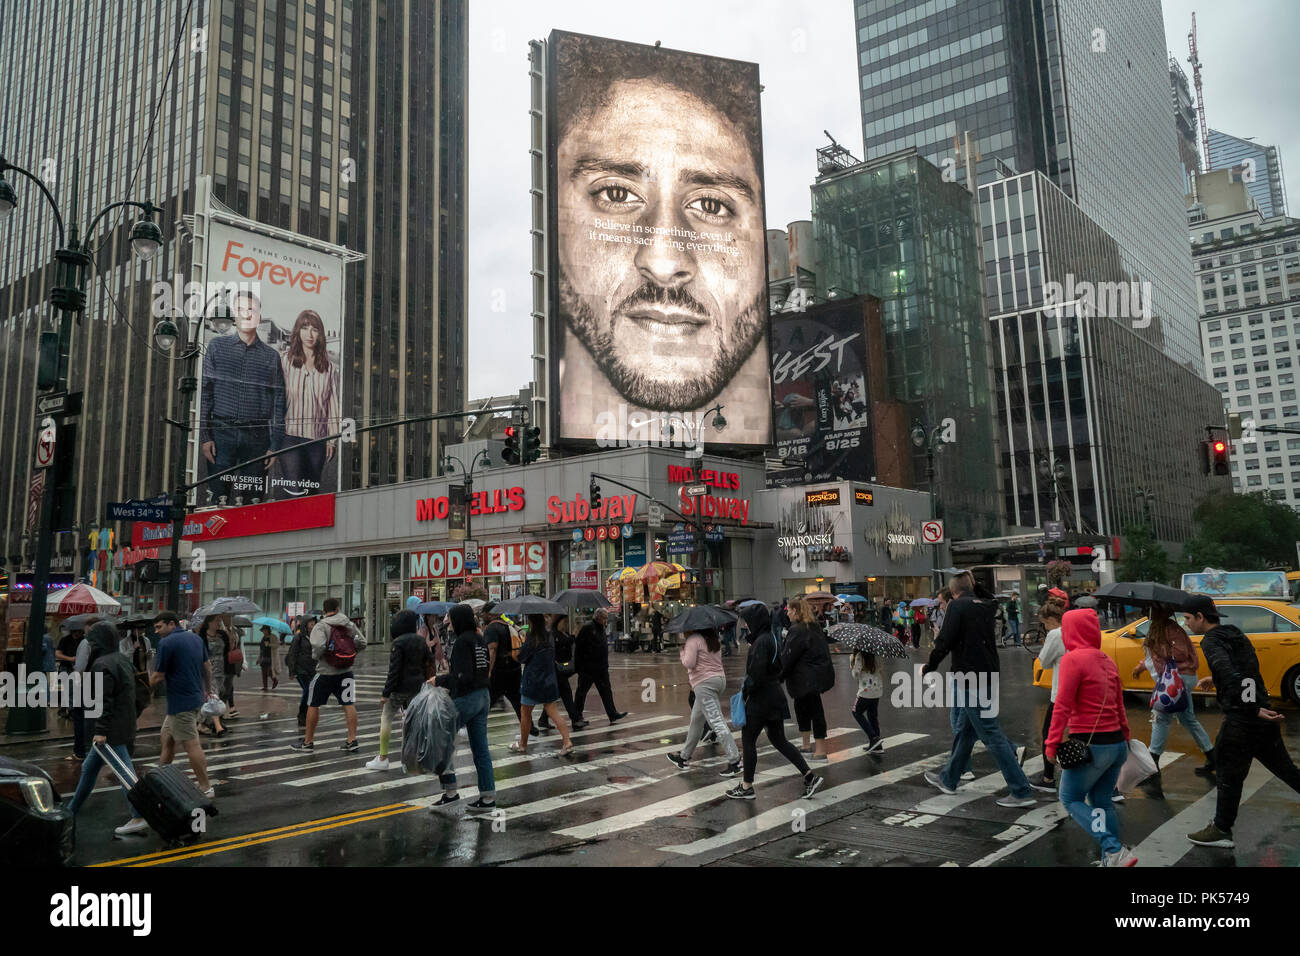 An electronic billboard for Nike products features Colin Kaepernick, the American football quarterback who in protest against police brutality 'took a knee' during the playing of the national anthem, seen on Sunday, September 9, 2018. The 'Just Do It' ad campaign, which also features other athletes, some handicapped, has elicited calls for a boycott of Nike from conservative elements as Nike saw a spike of 31% in its online sales.  (© Richard B. Levine) - Stock Image